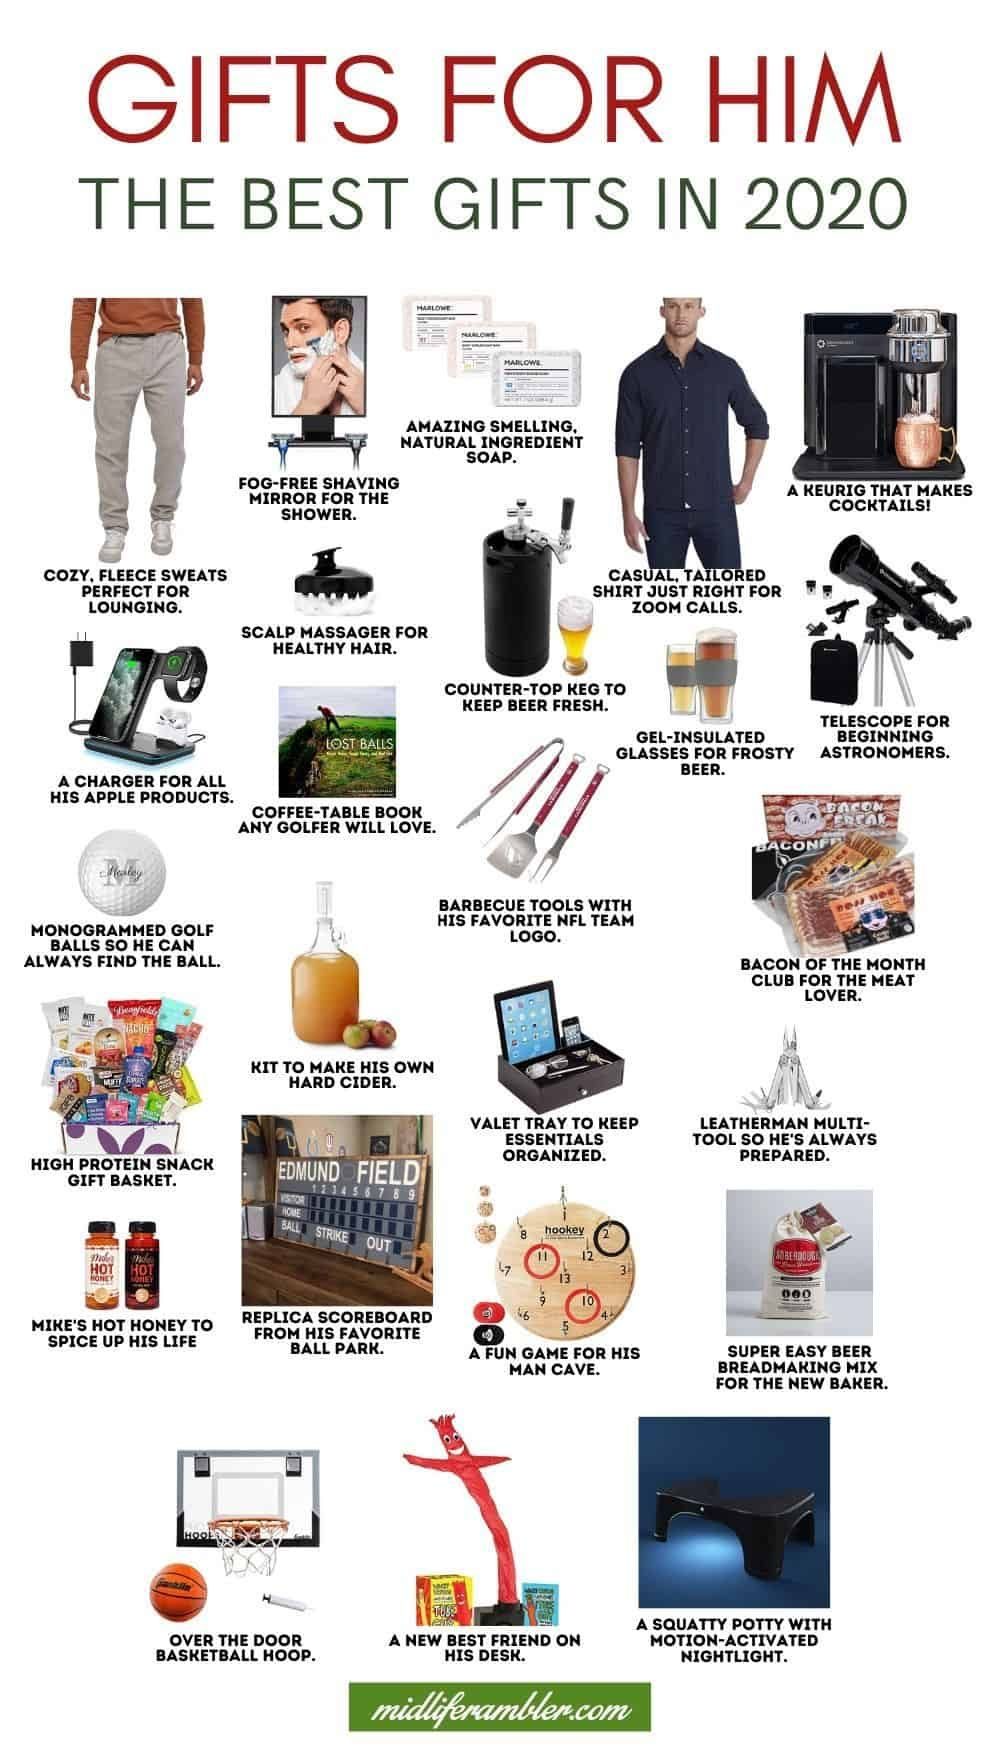 Gift Guide 2020 The Best Gifts For Men Over 40 Dad Gift Guide Dad Holiday Gifts Mens Gift Guide